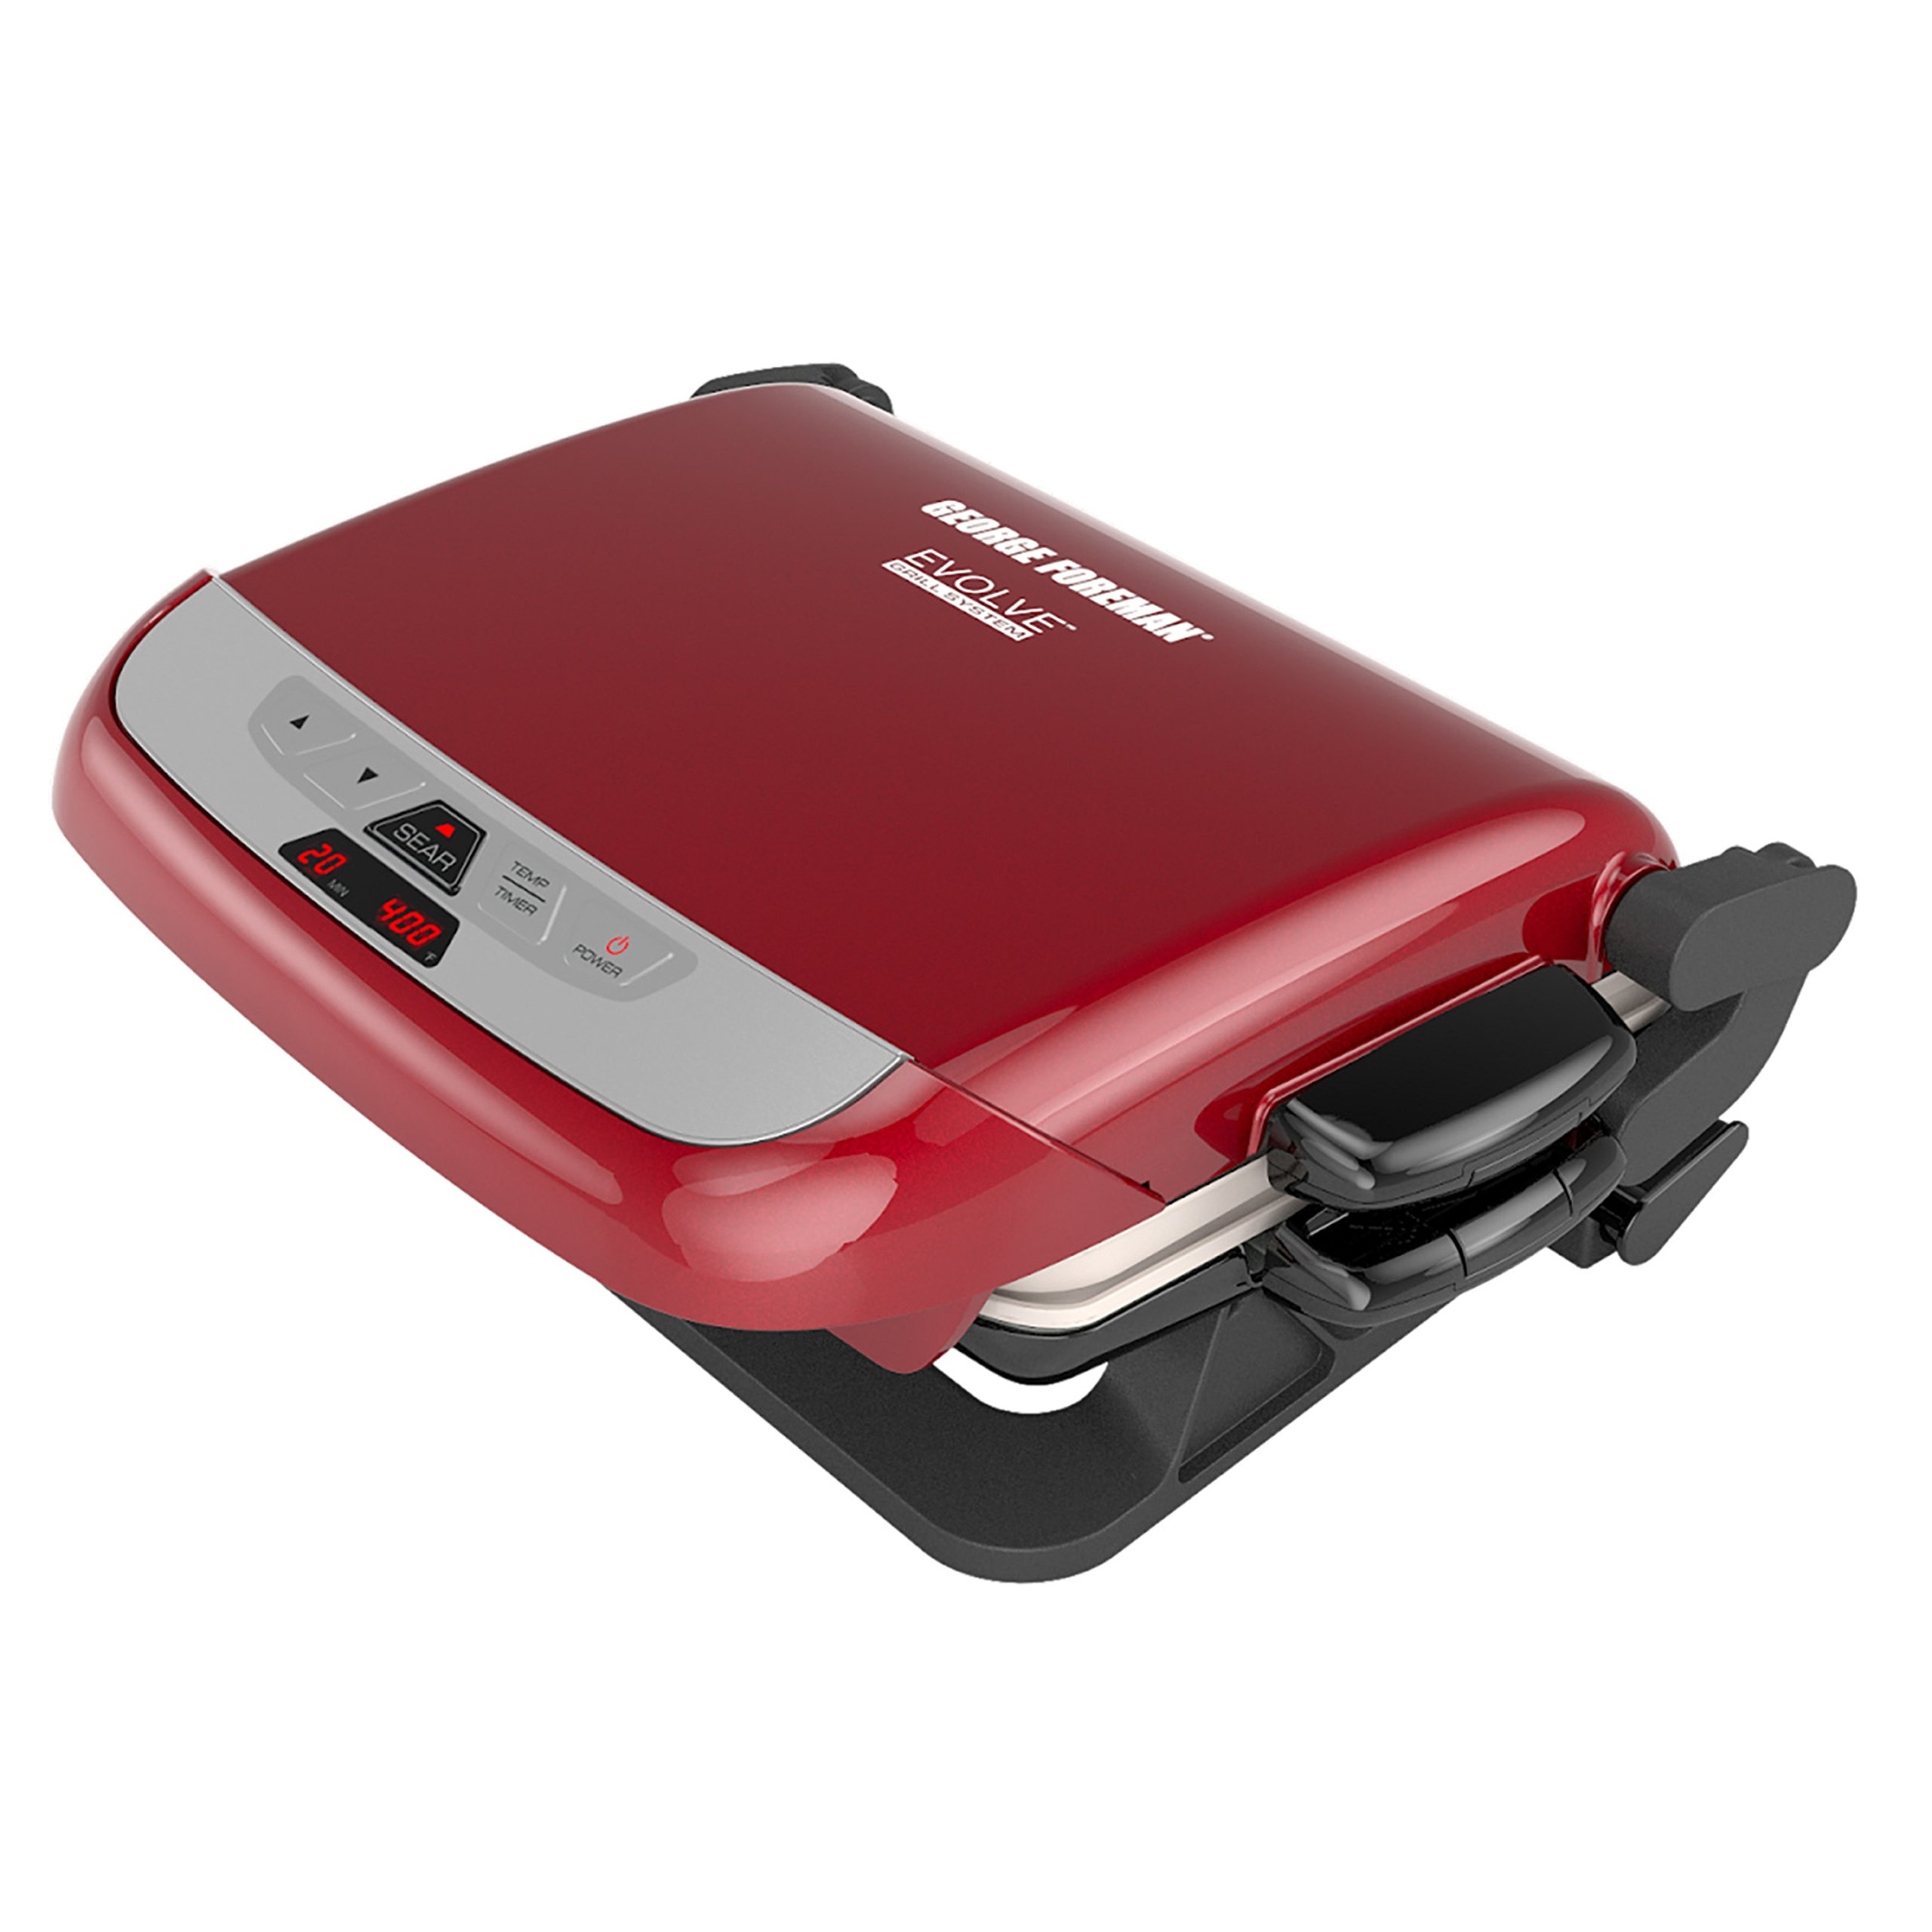 George Foreman 5-Serving Multi-Plate Evolve Grill System with Ceramic Plates and Waffle Plates, Red, GRP4842RB by George Foreman